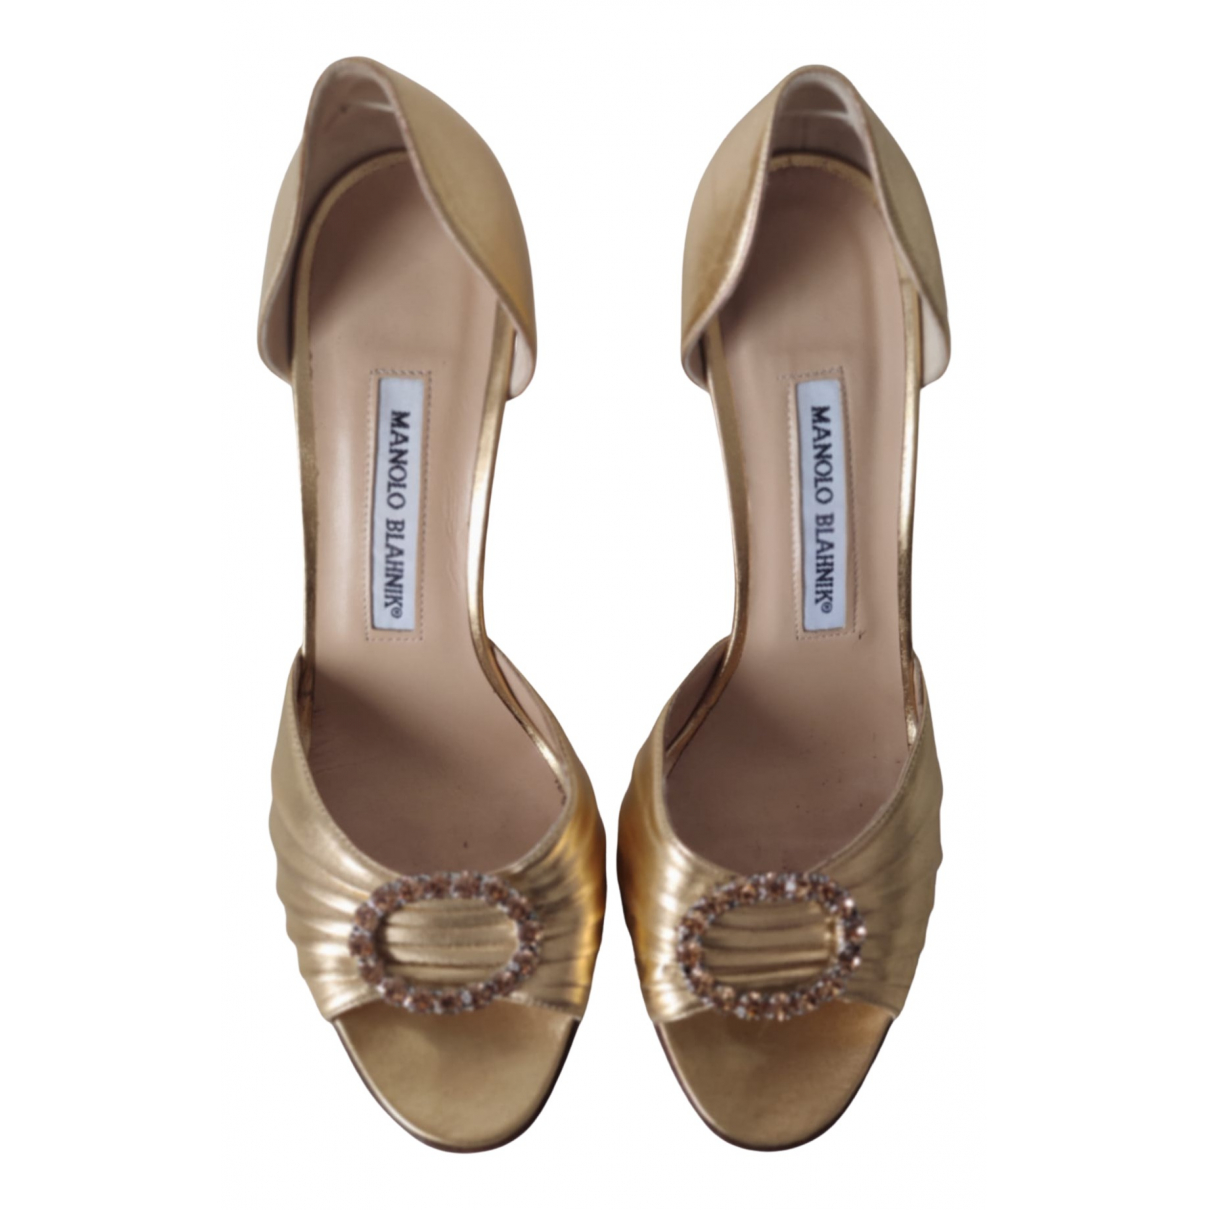 Manolo Blahnik N Gold Suede Heels for Women 37.5 EU